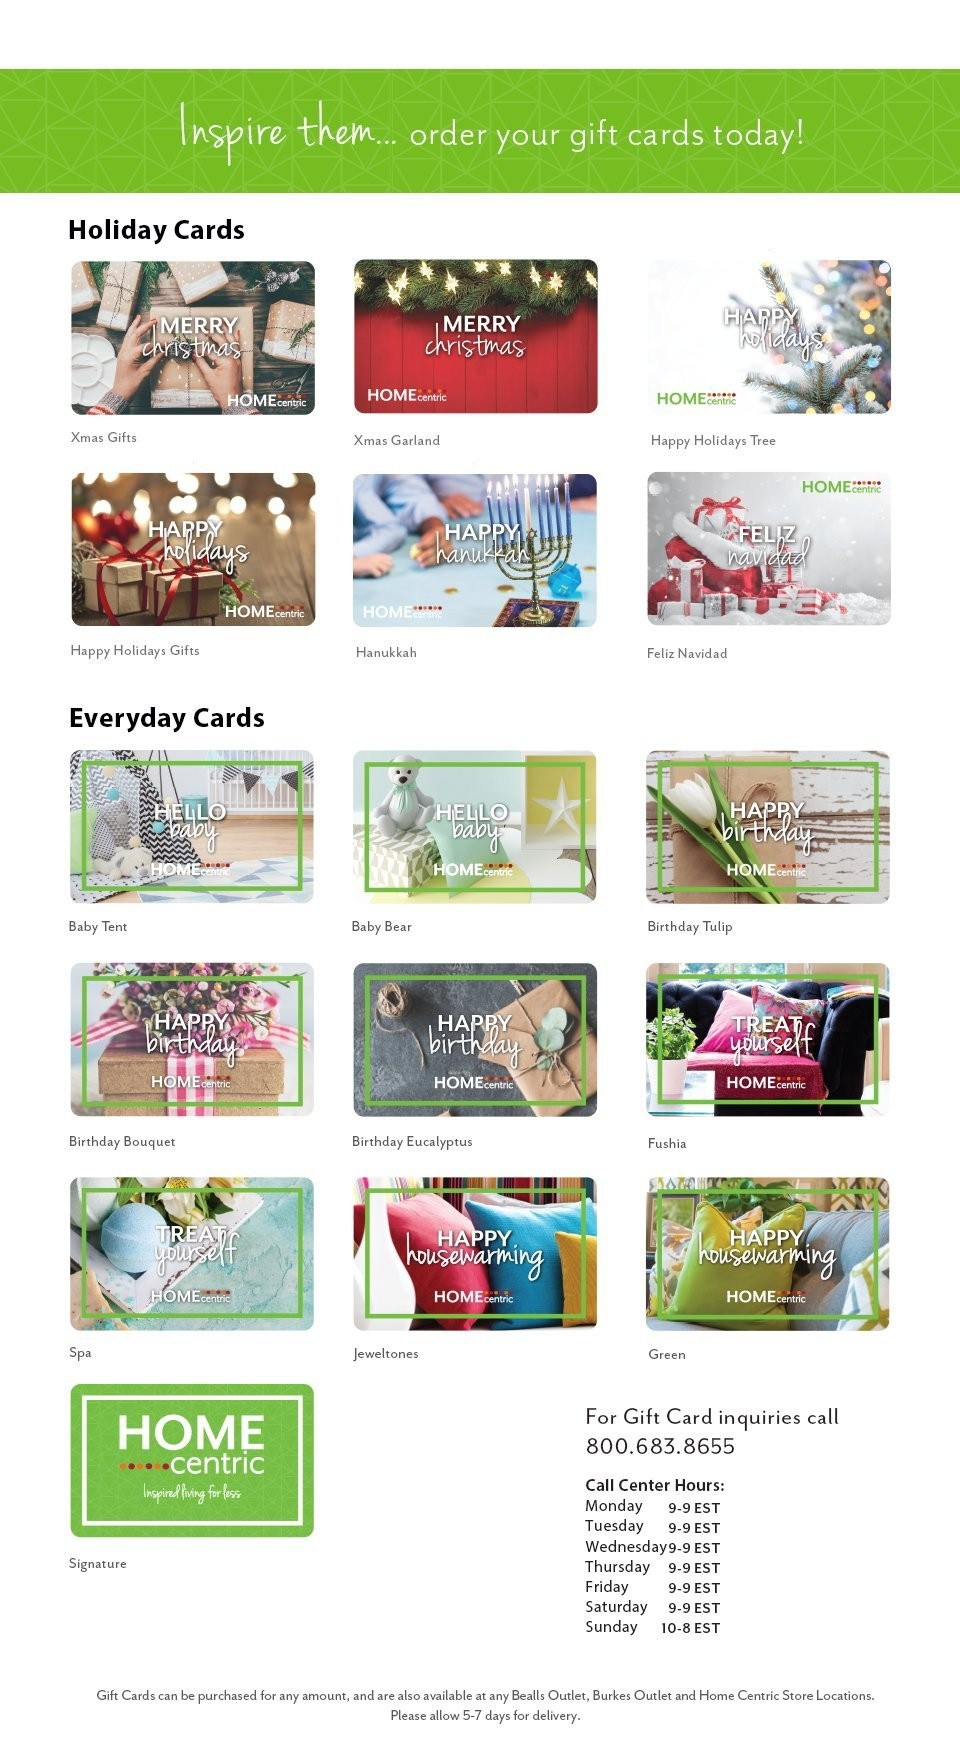 Home Centric Giftcards